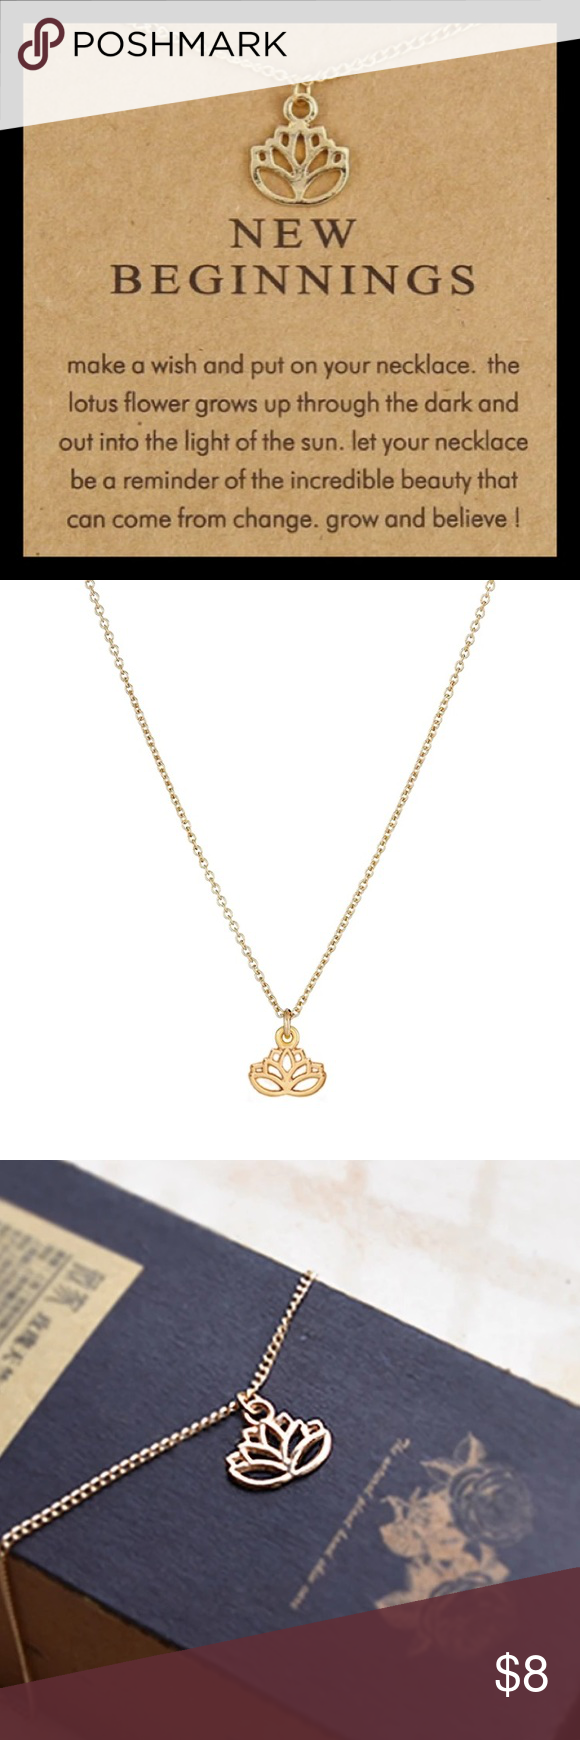 New New Beginnings Lotus Flower Necklace Boutique